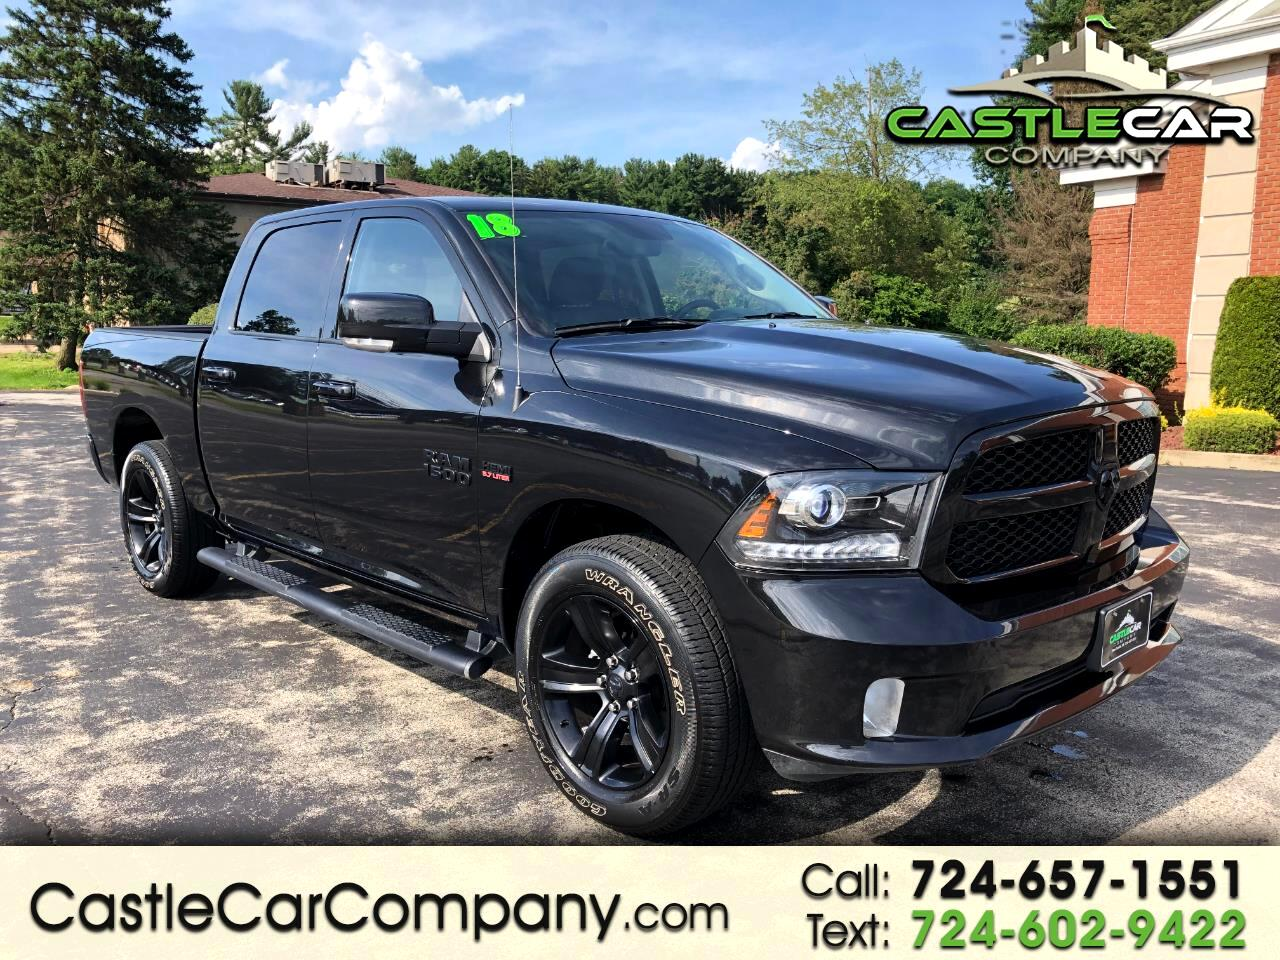 2018 RAM 1500 SPORT CREW CAB NIGHT EDITION 4WD